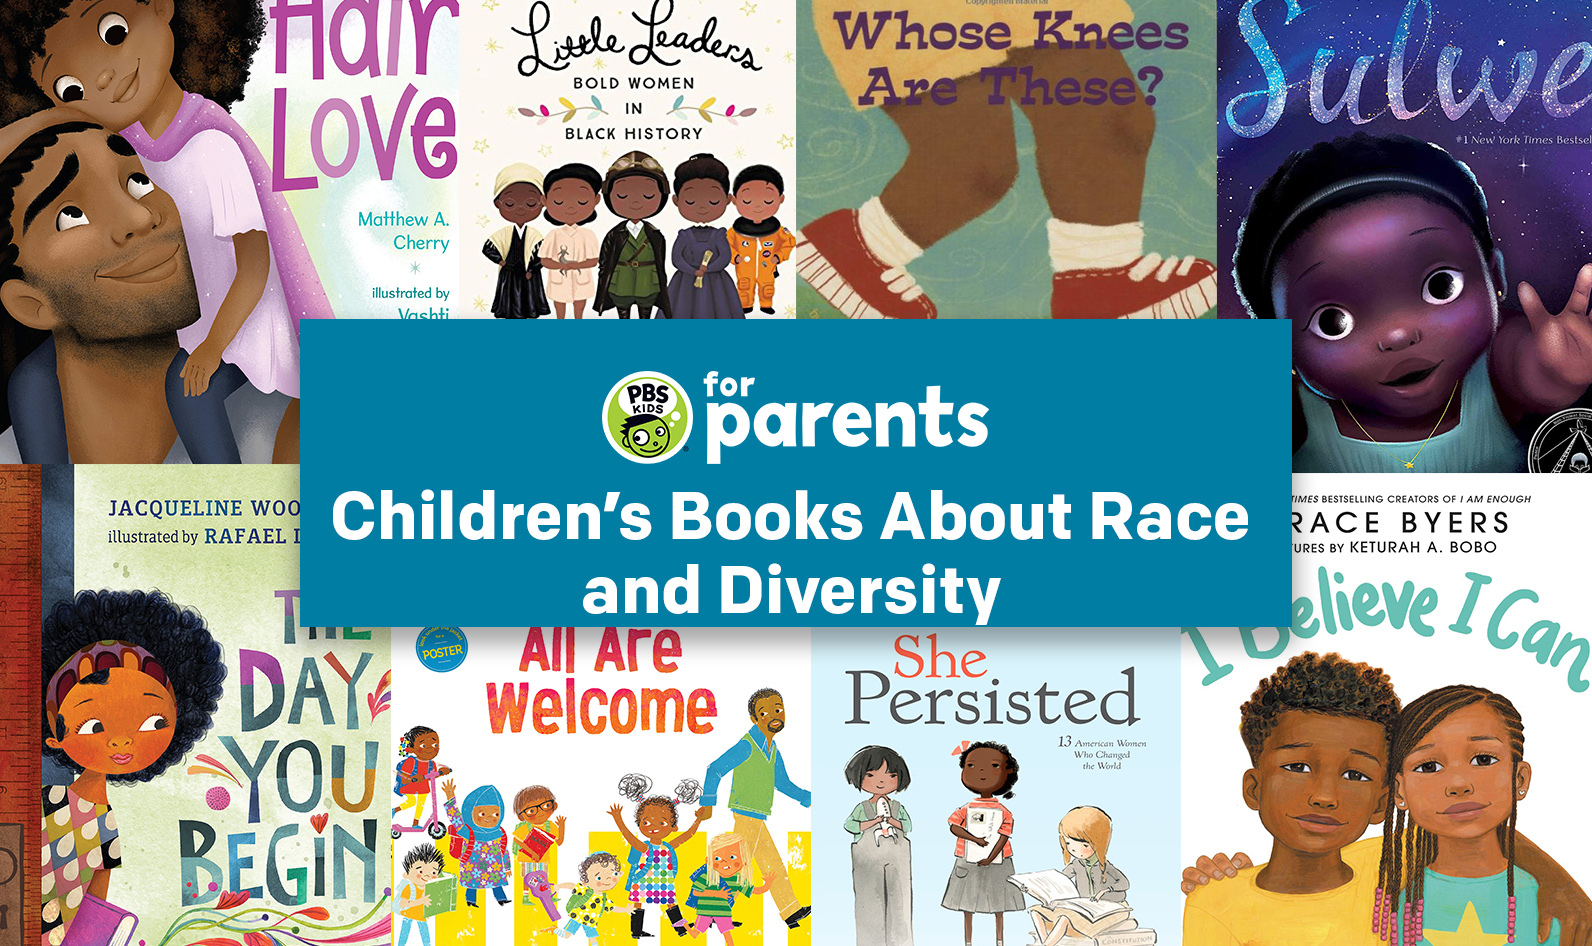 13 Children's Books About Race and Diversity | Parenting Tips & Advice | PBS KIDS for Parents